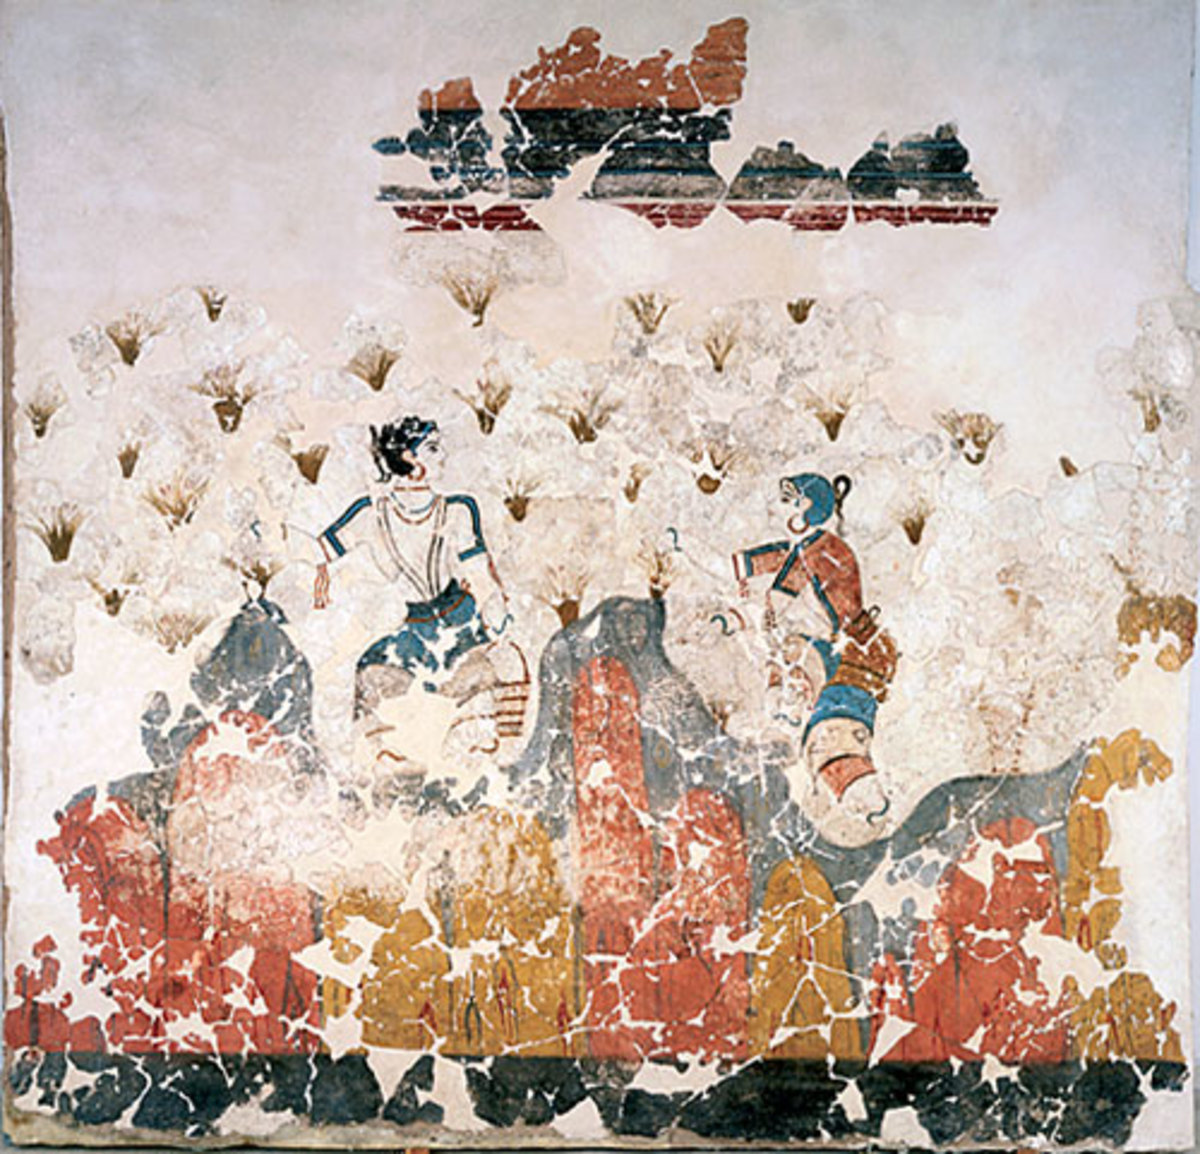 Possibly a puberty ritual, Minoan maidens gather saffron blossoms from a schematic landscape.